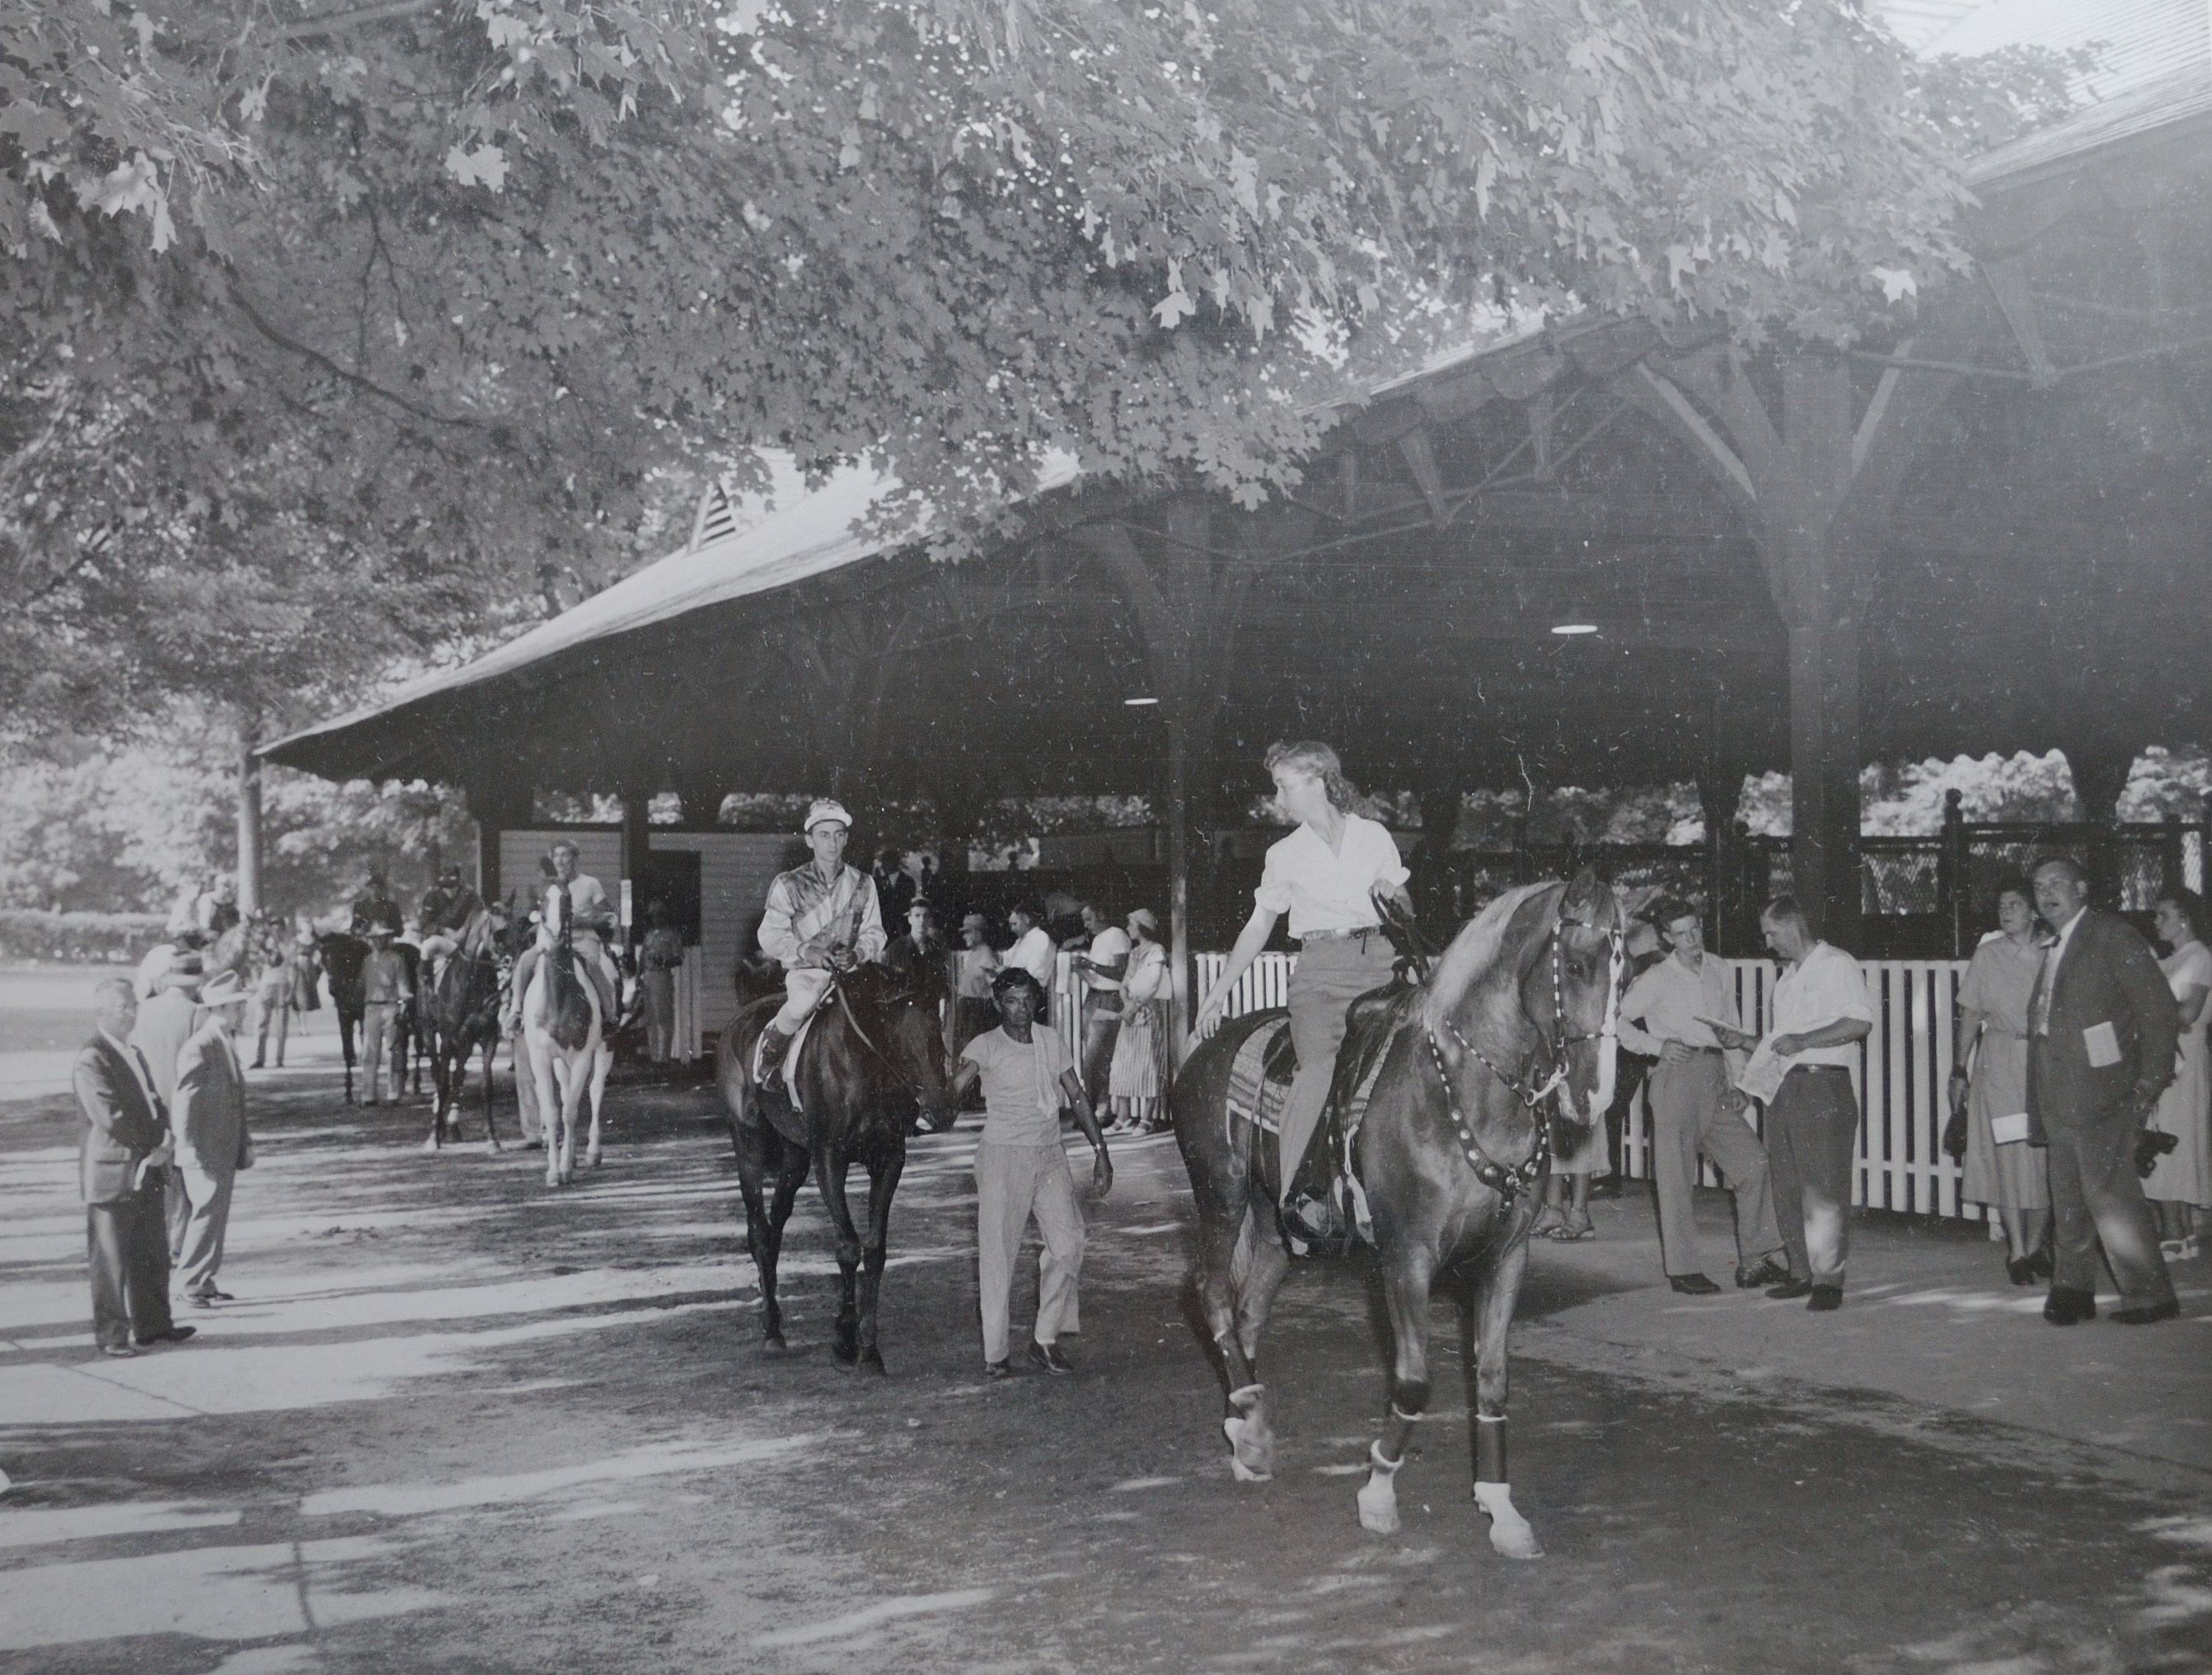 The informal comingling of horses, grooms, jockeys and fans in the paddock at Saratoga Race Course